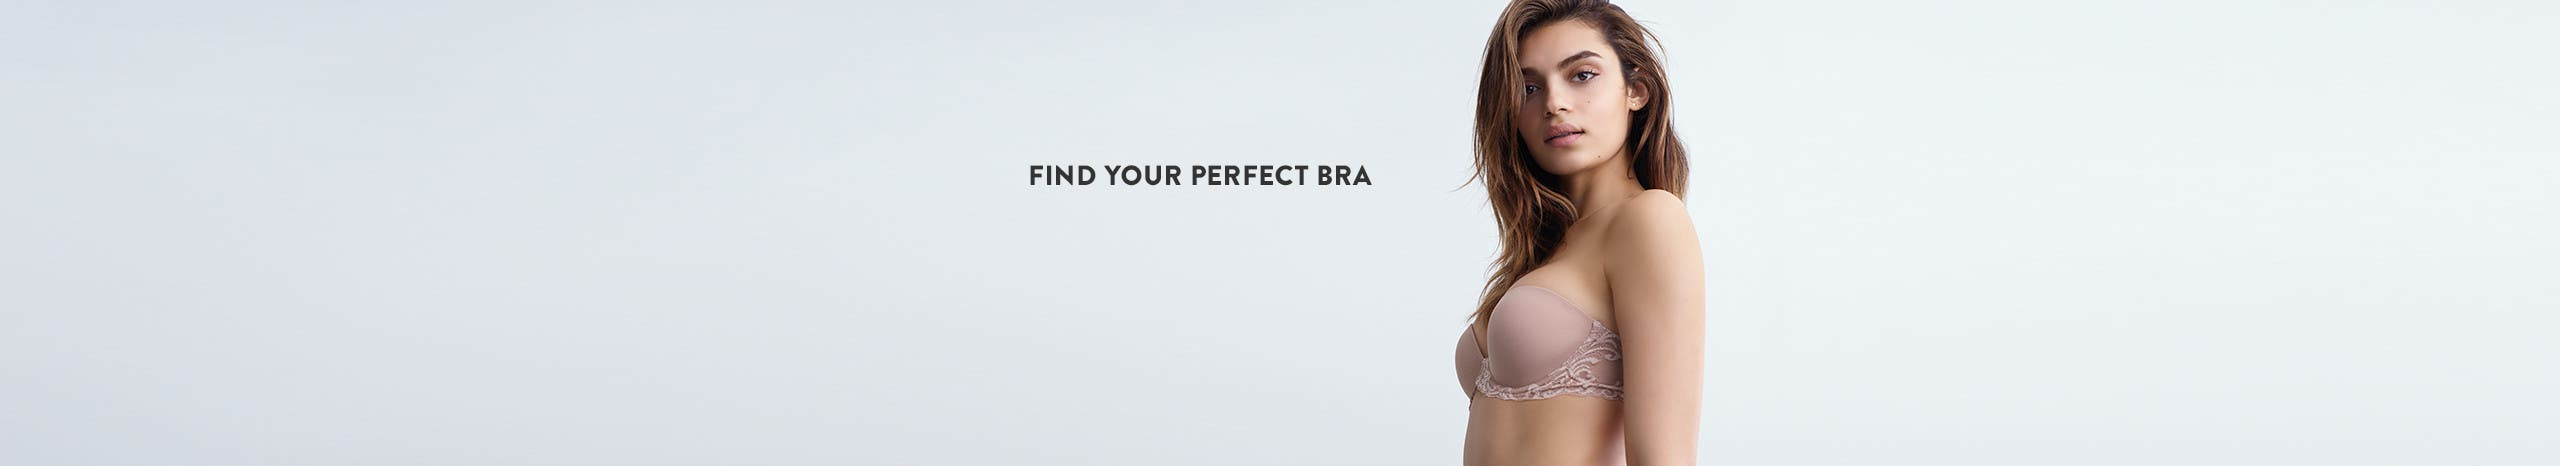 Find your perfect bra.